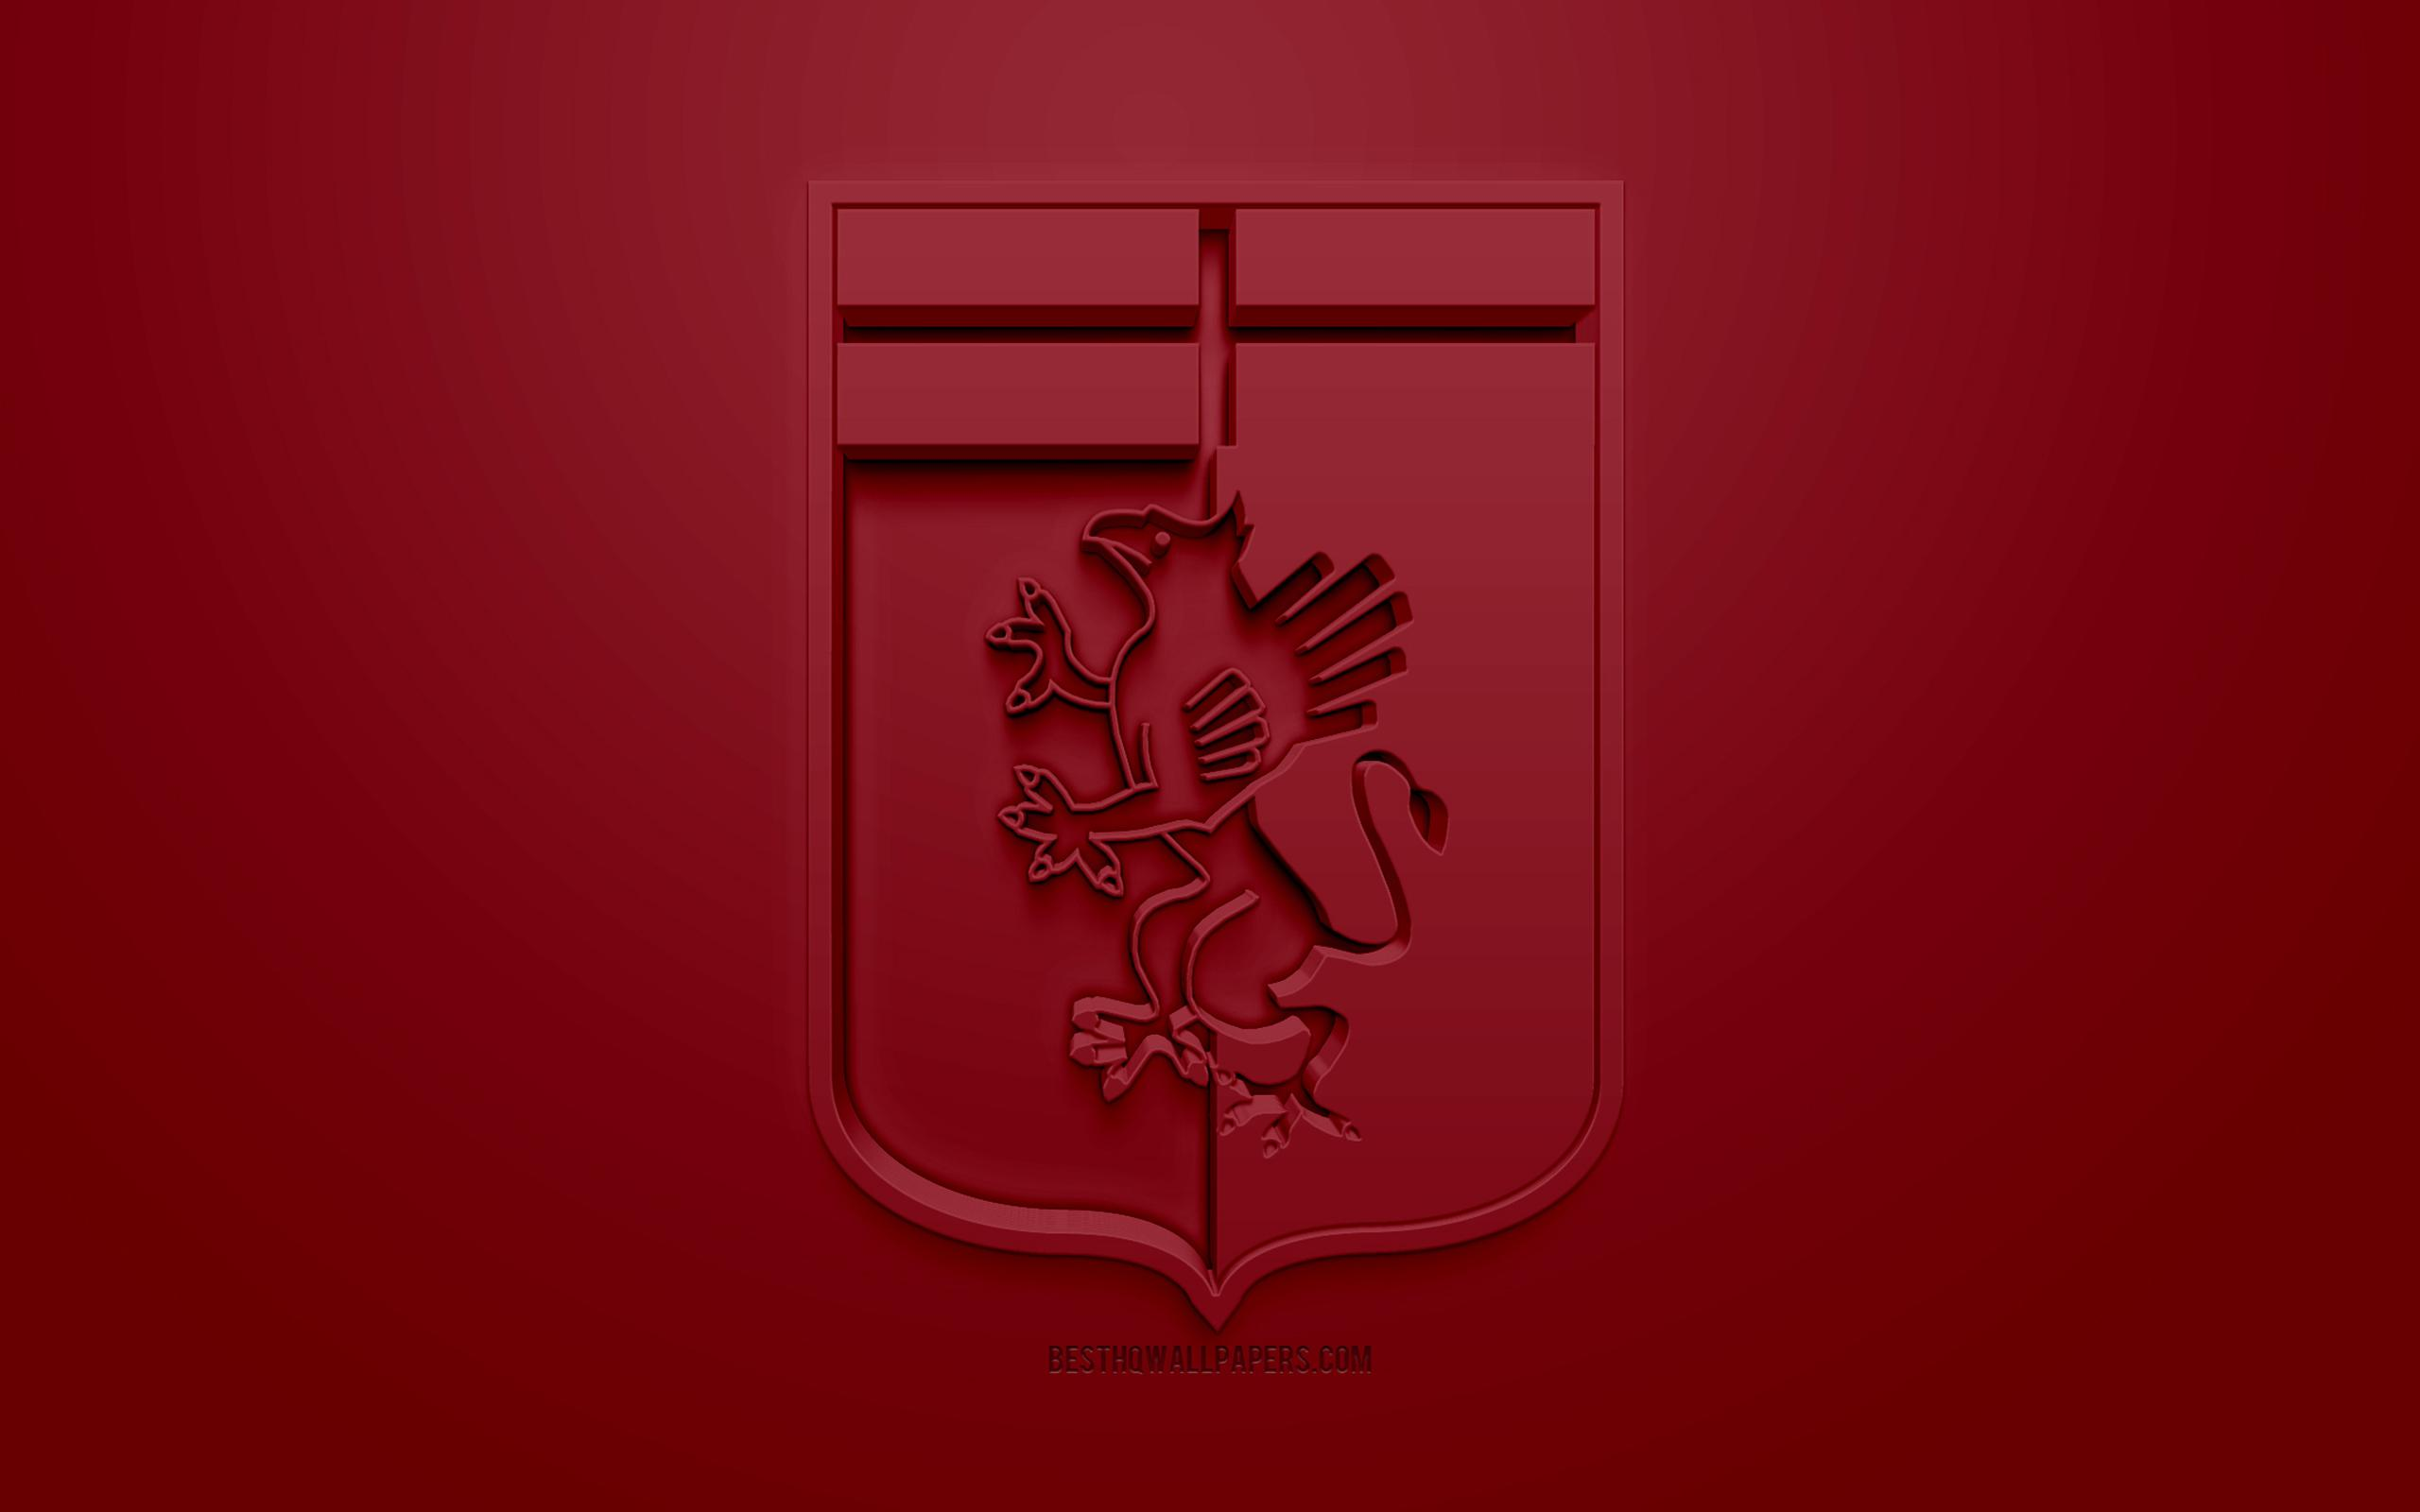 Download wallpapers Genoa CFC, creative 3D logo, burgundy background ...